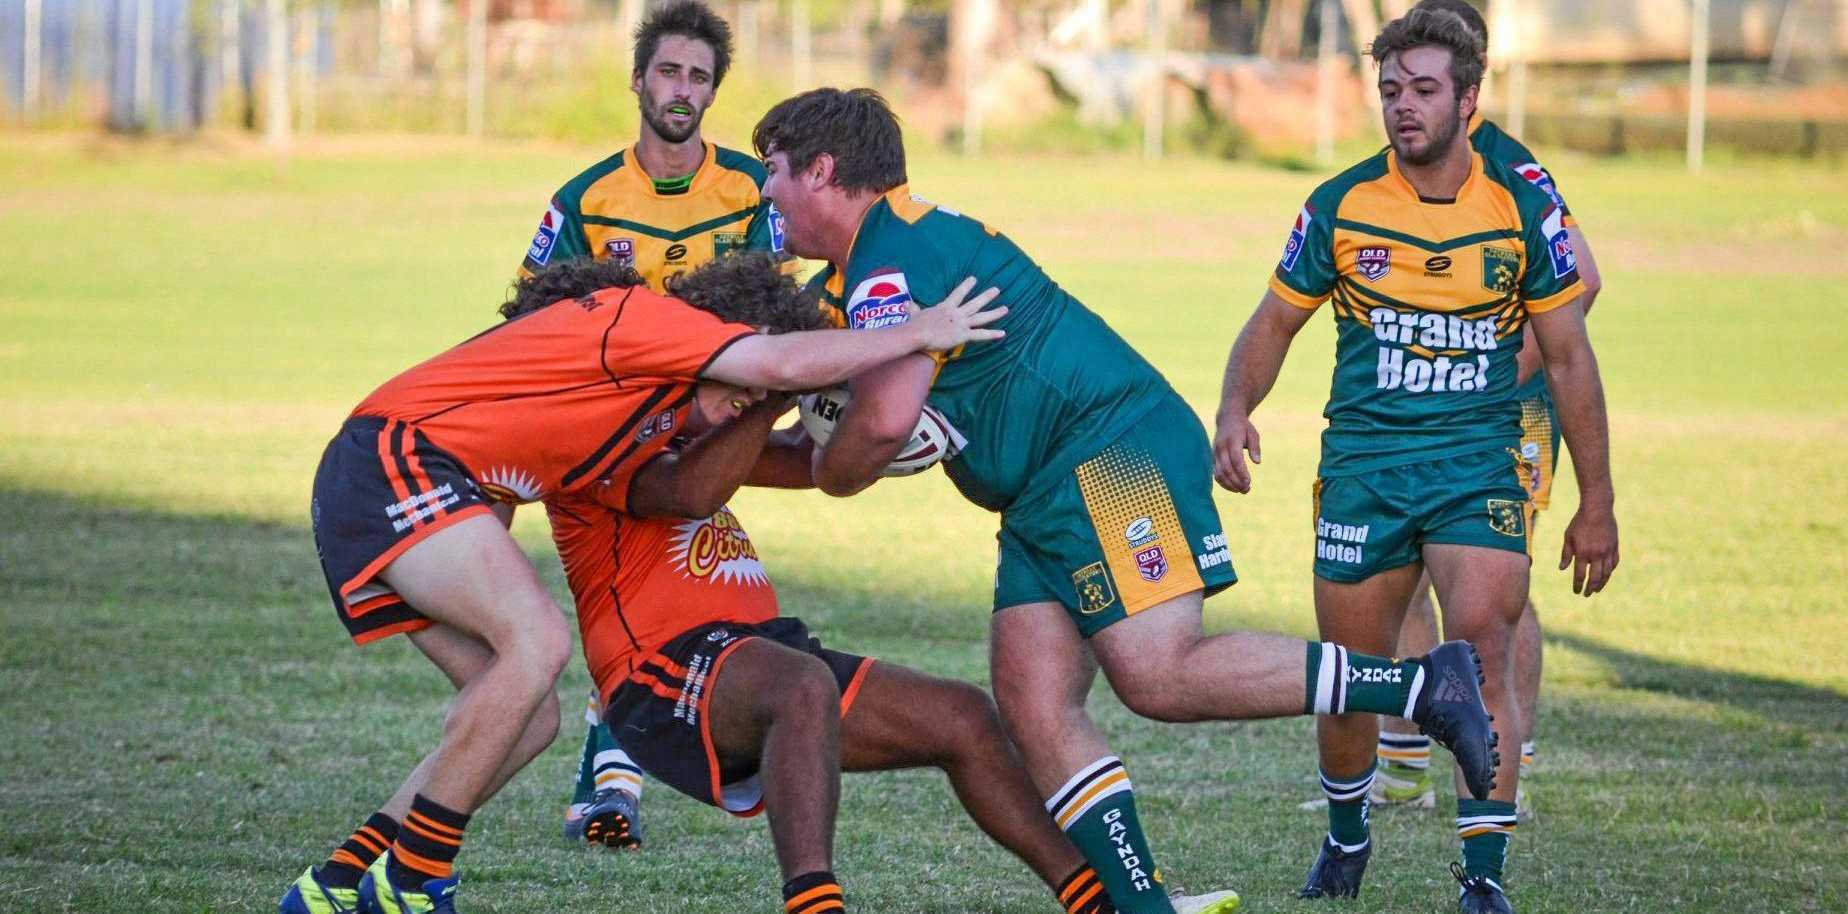 HEAD ON: Gayndah Gladiators' Jaybin Pearce slams into Mundubbera Tigers' defensive line. Photo courtesy Robyn Geddes.